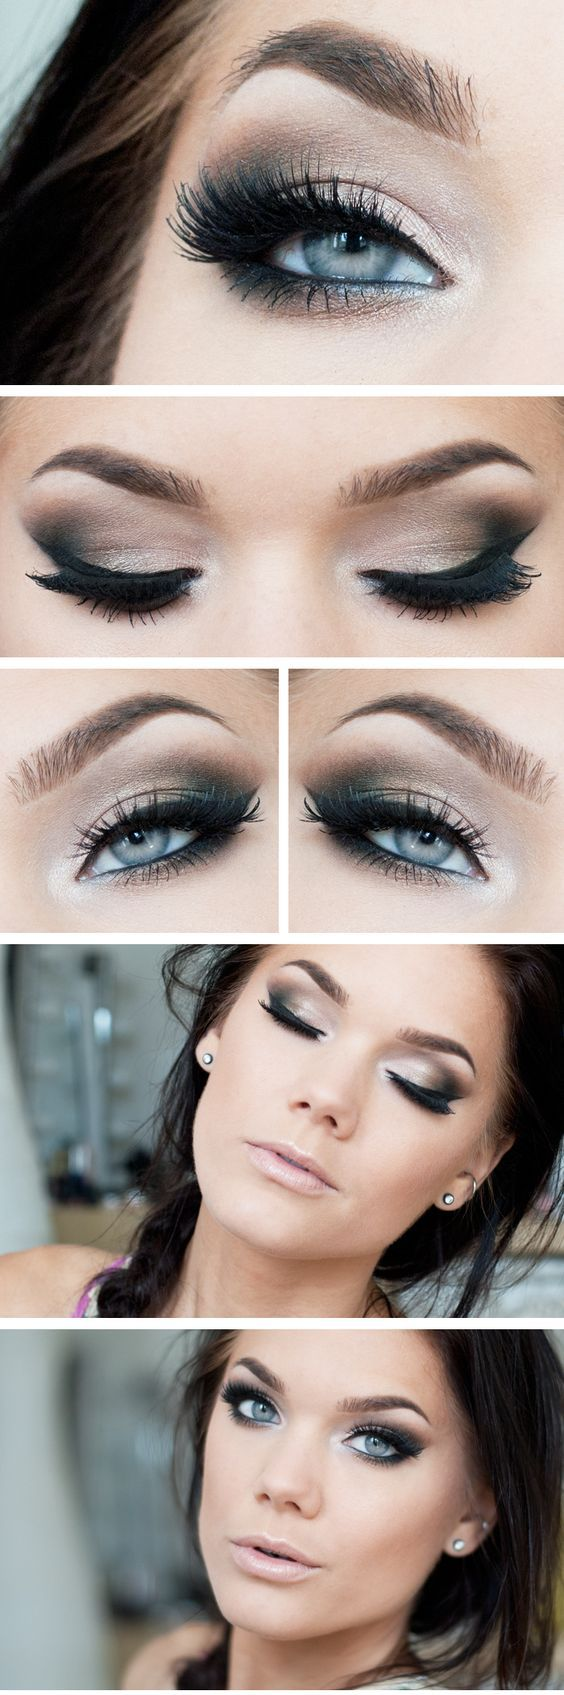 Best 25+ Almond eye makeup ideas on Pinterest | Almond eyes, Easy ...